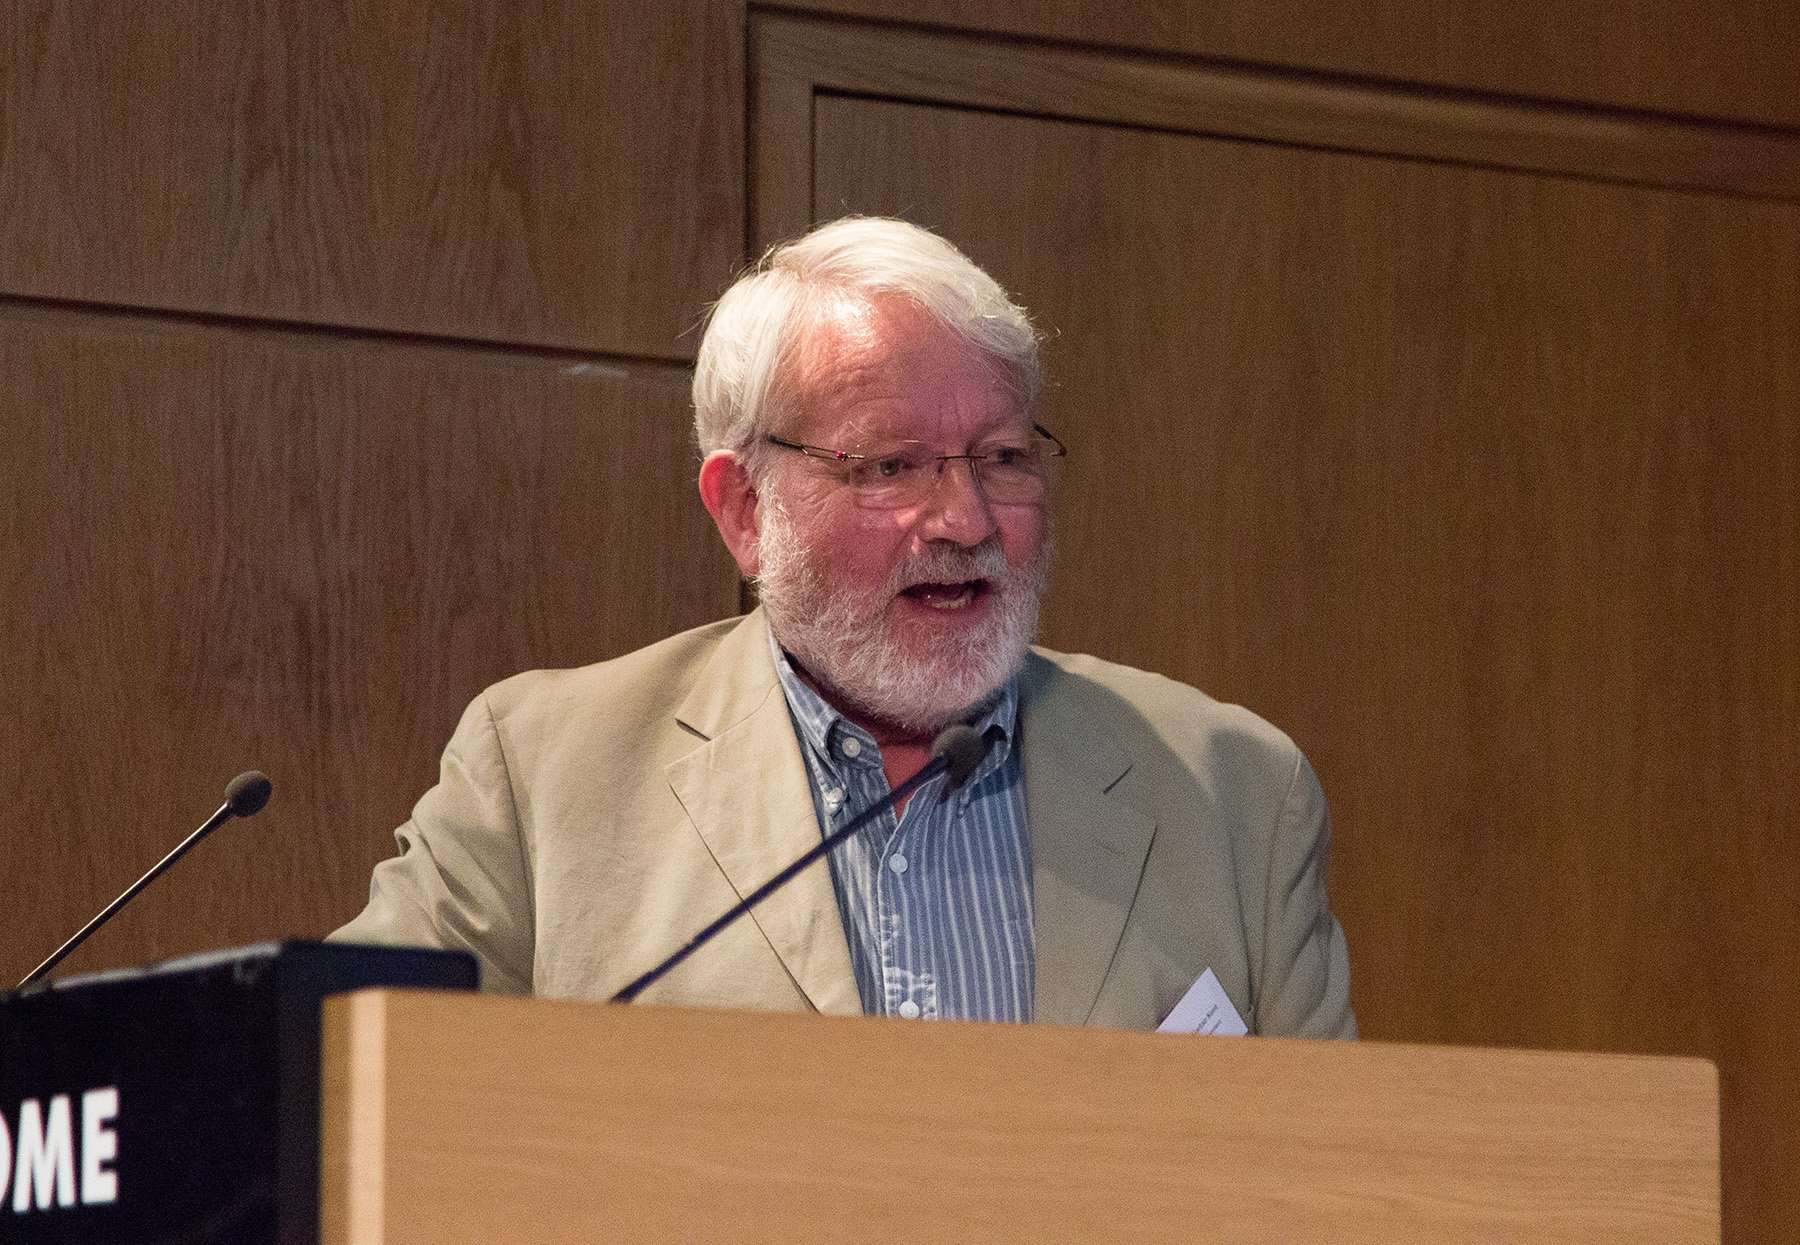 Alastair Kent OBE speaking at RAREsummit19